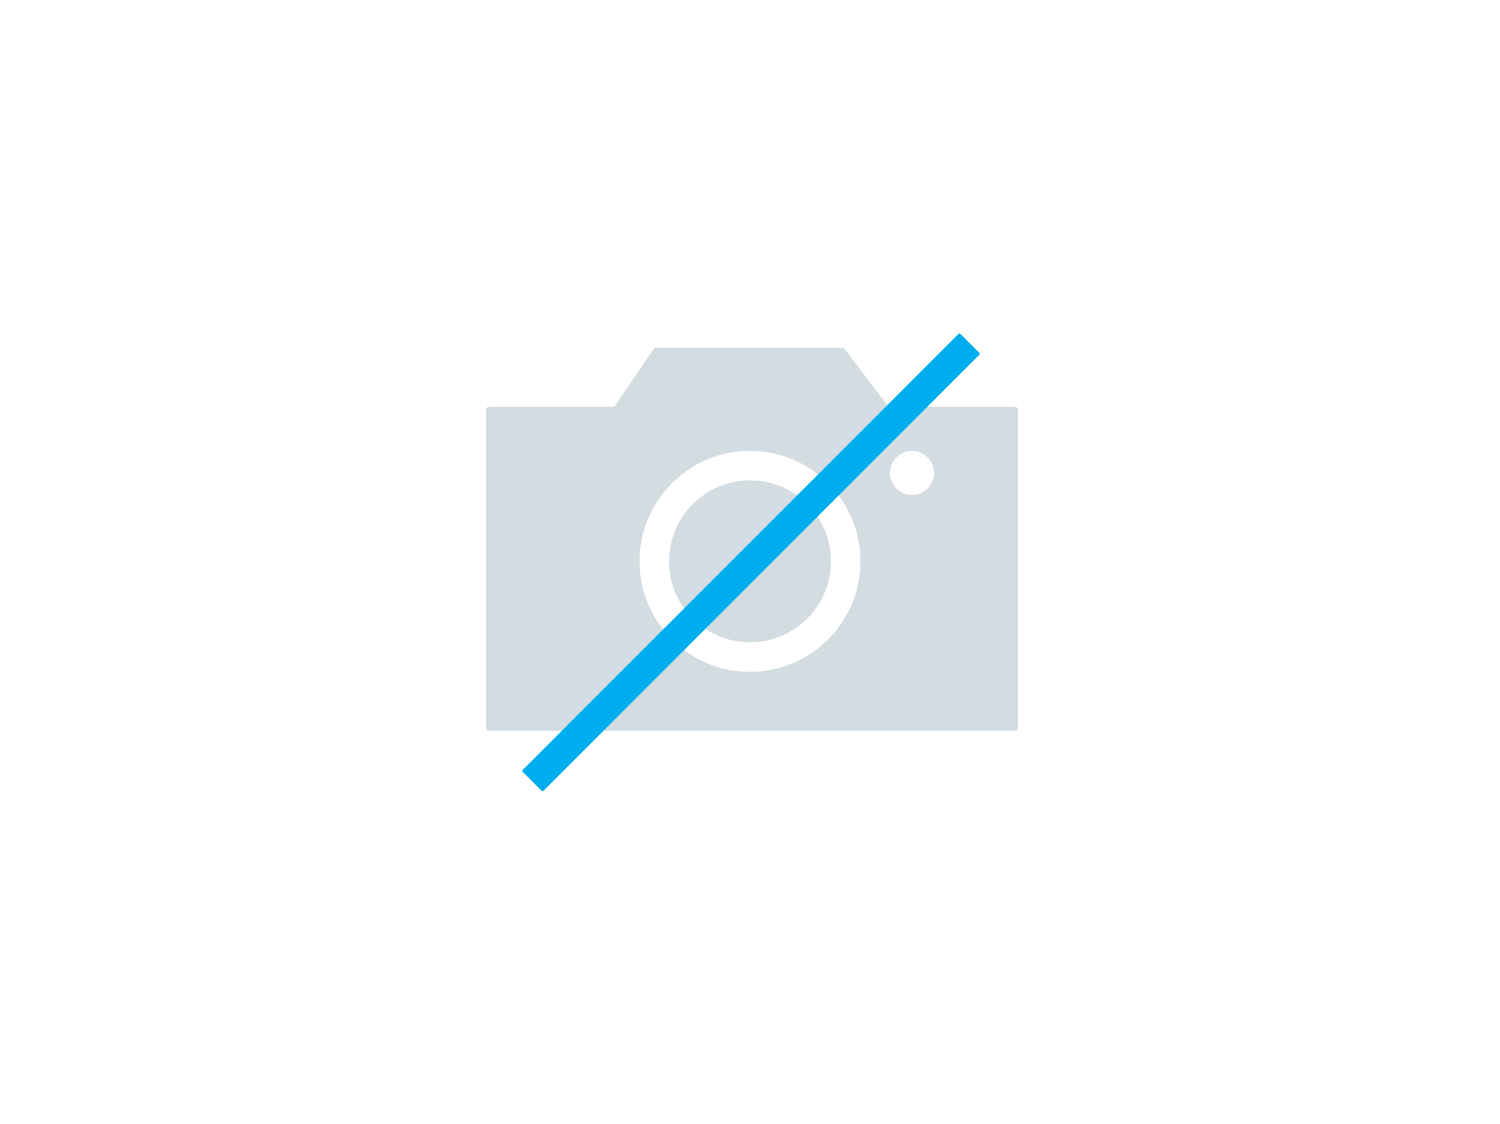 Fauteuil Downtown lederlook cognac zwart